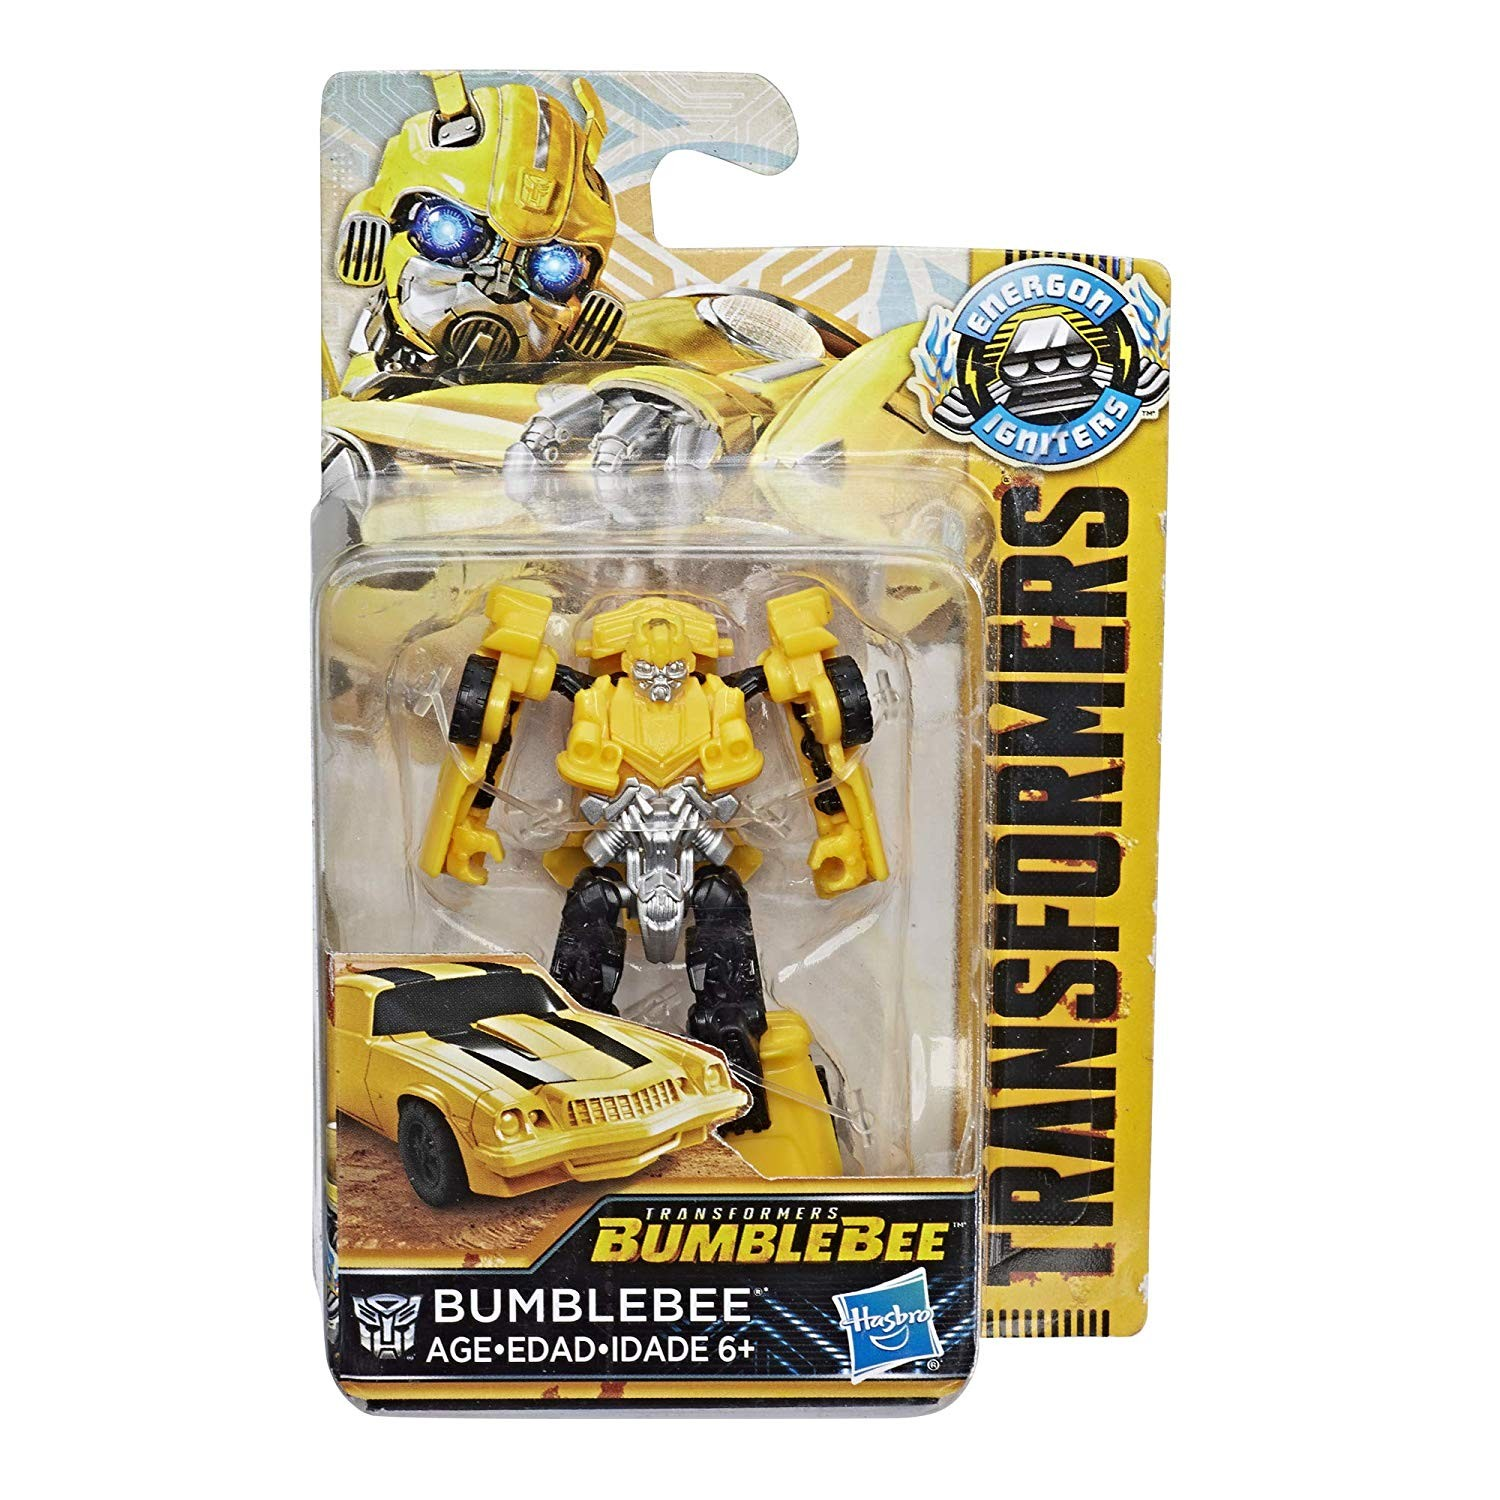 Transformers News: More Stock Images of Transformers Bumblebee Movie Masks, Stinger, Speed Series Camaro Bumblebee